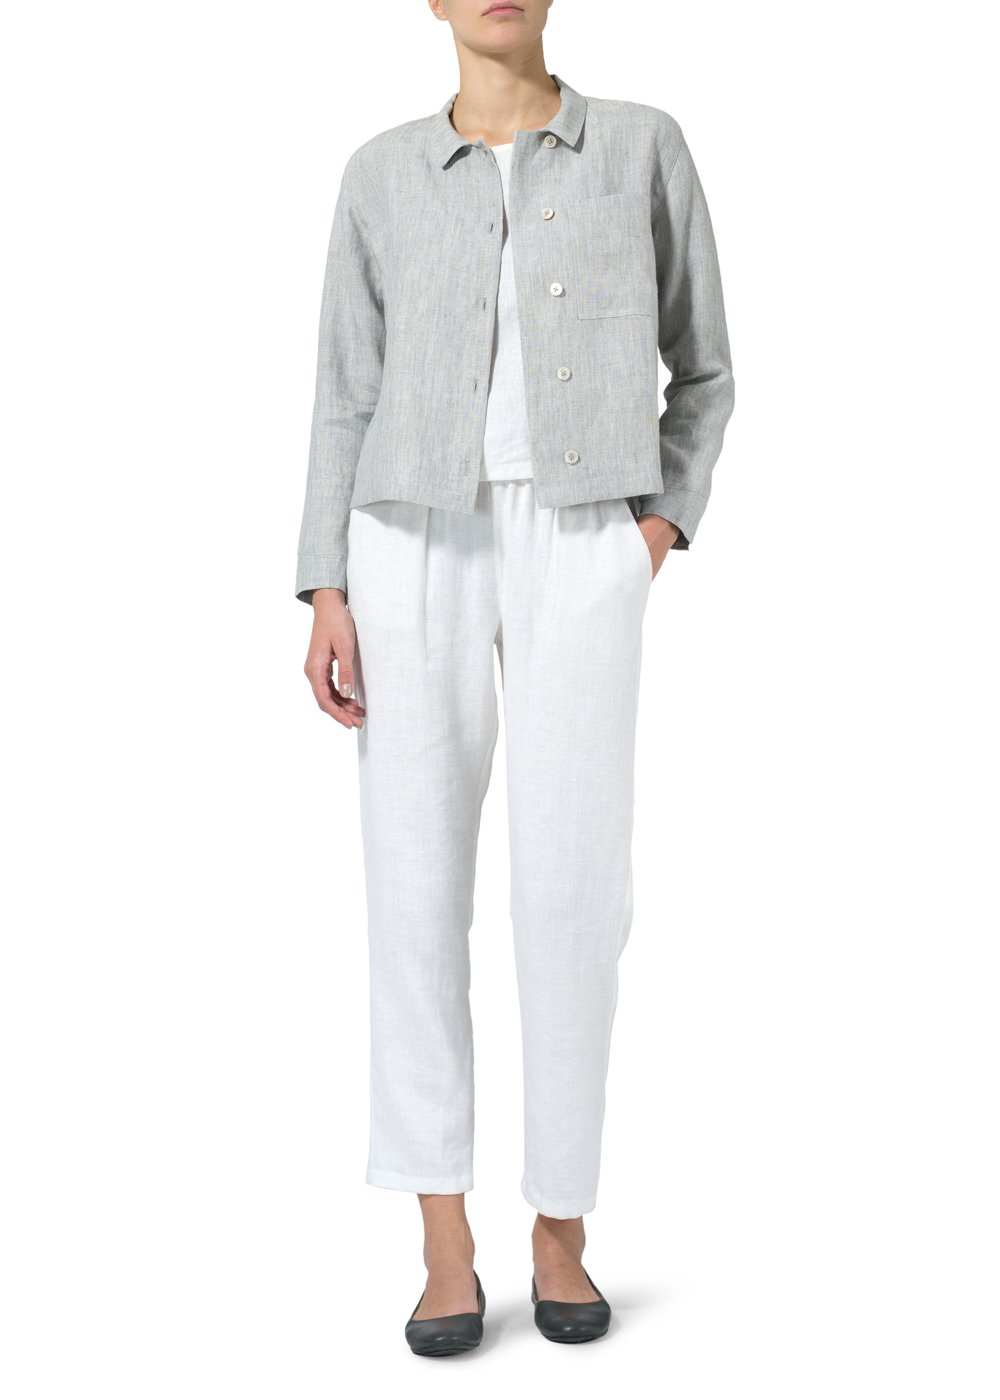 Vivid Linen Cropped Shirt Jacket With Pockets-M-Two Tone Light Gray